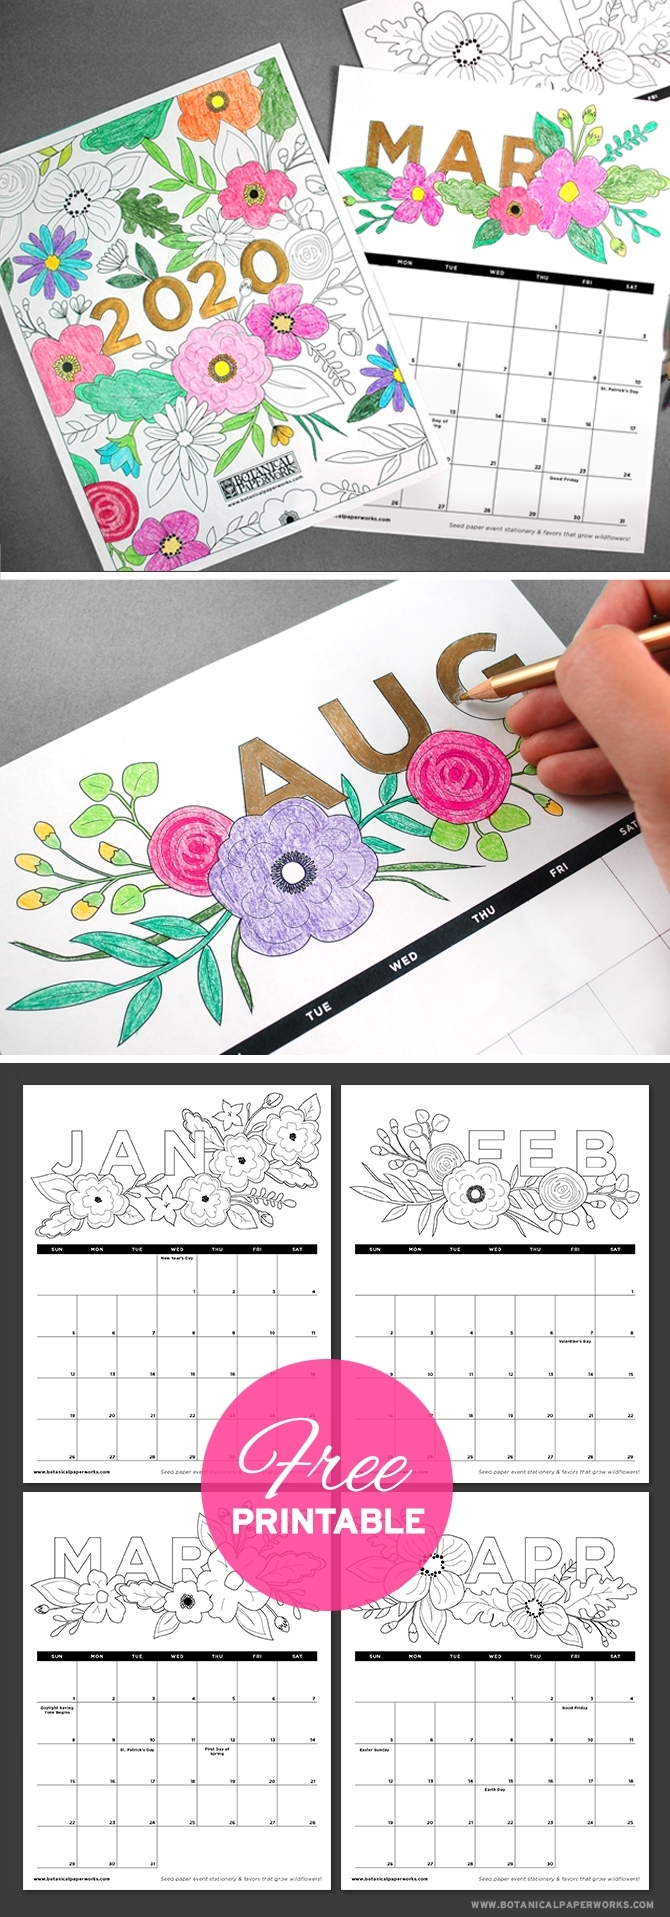 Free Printables} 2020 Calendars | Botanical Paperworks throughout 2020 Printable Yearly Colouring Calendar